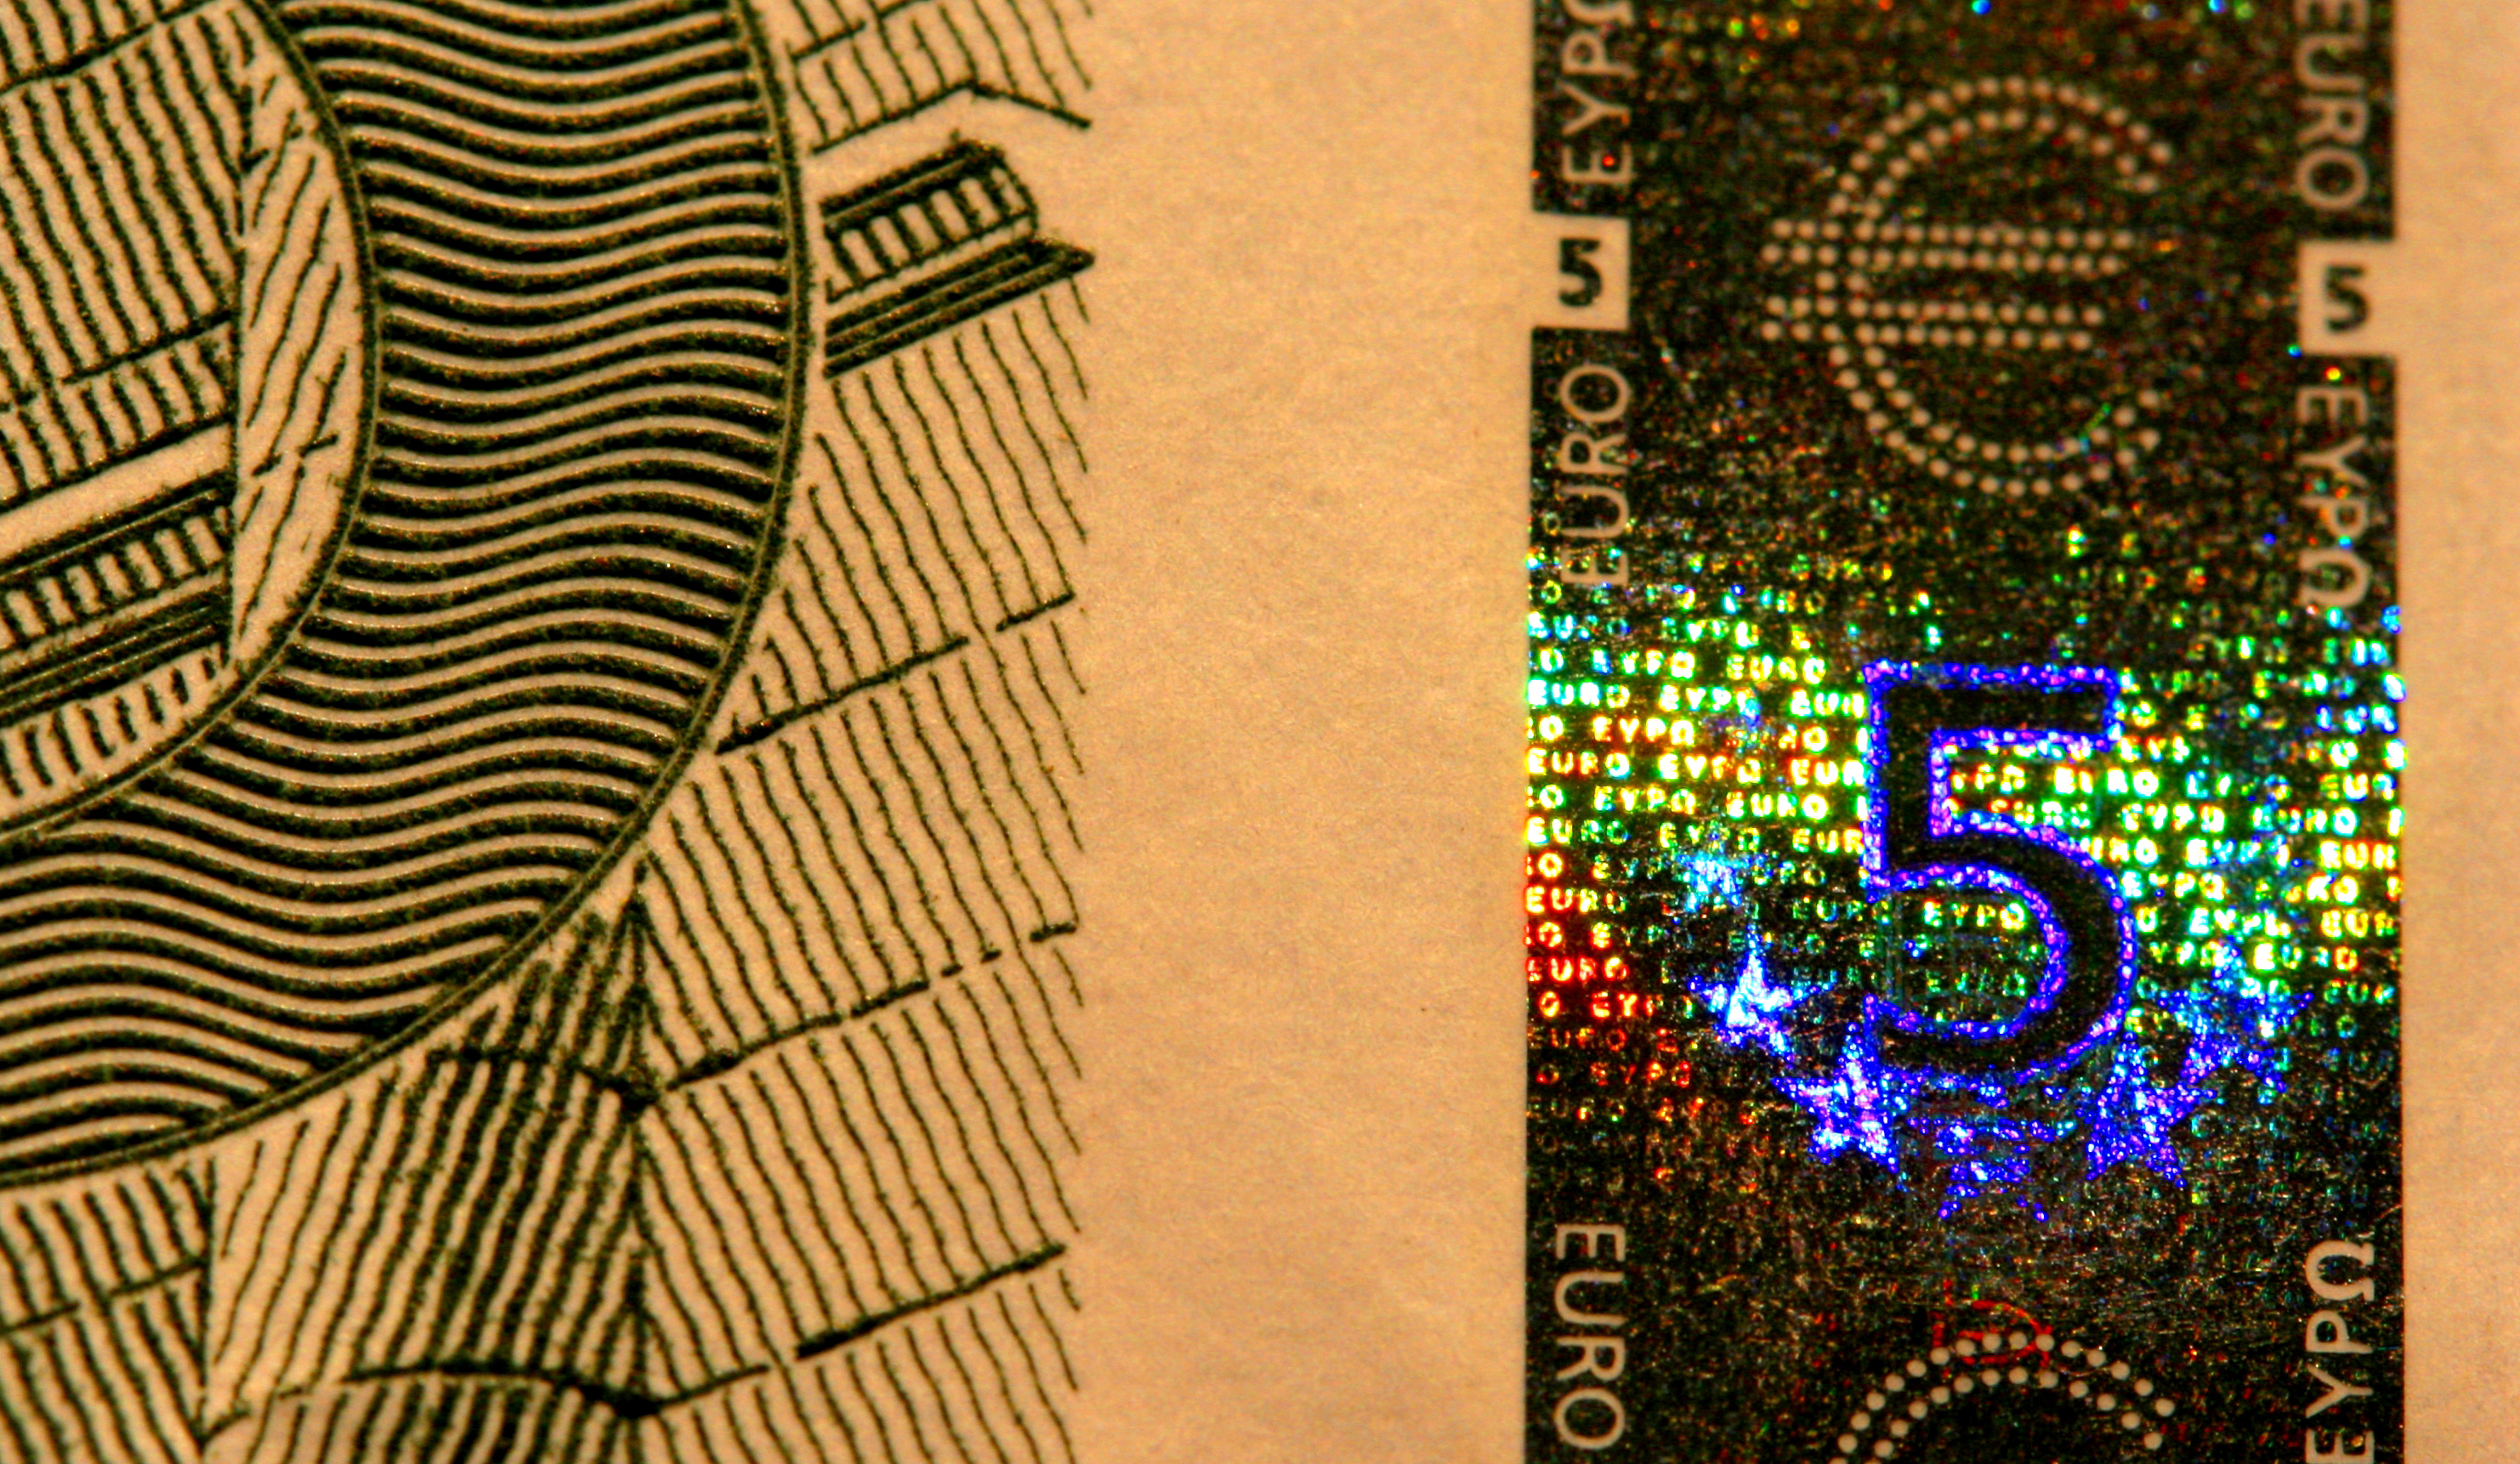 5 euro note wikipedia holographic band on the five euro note biocorpaavc Choice Image